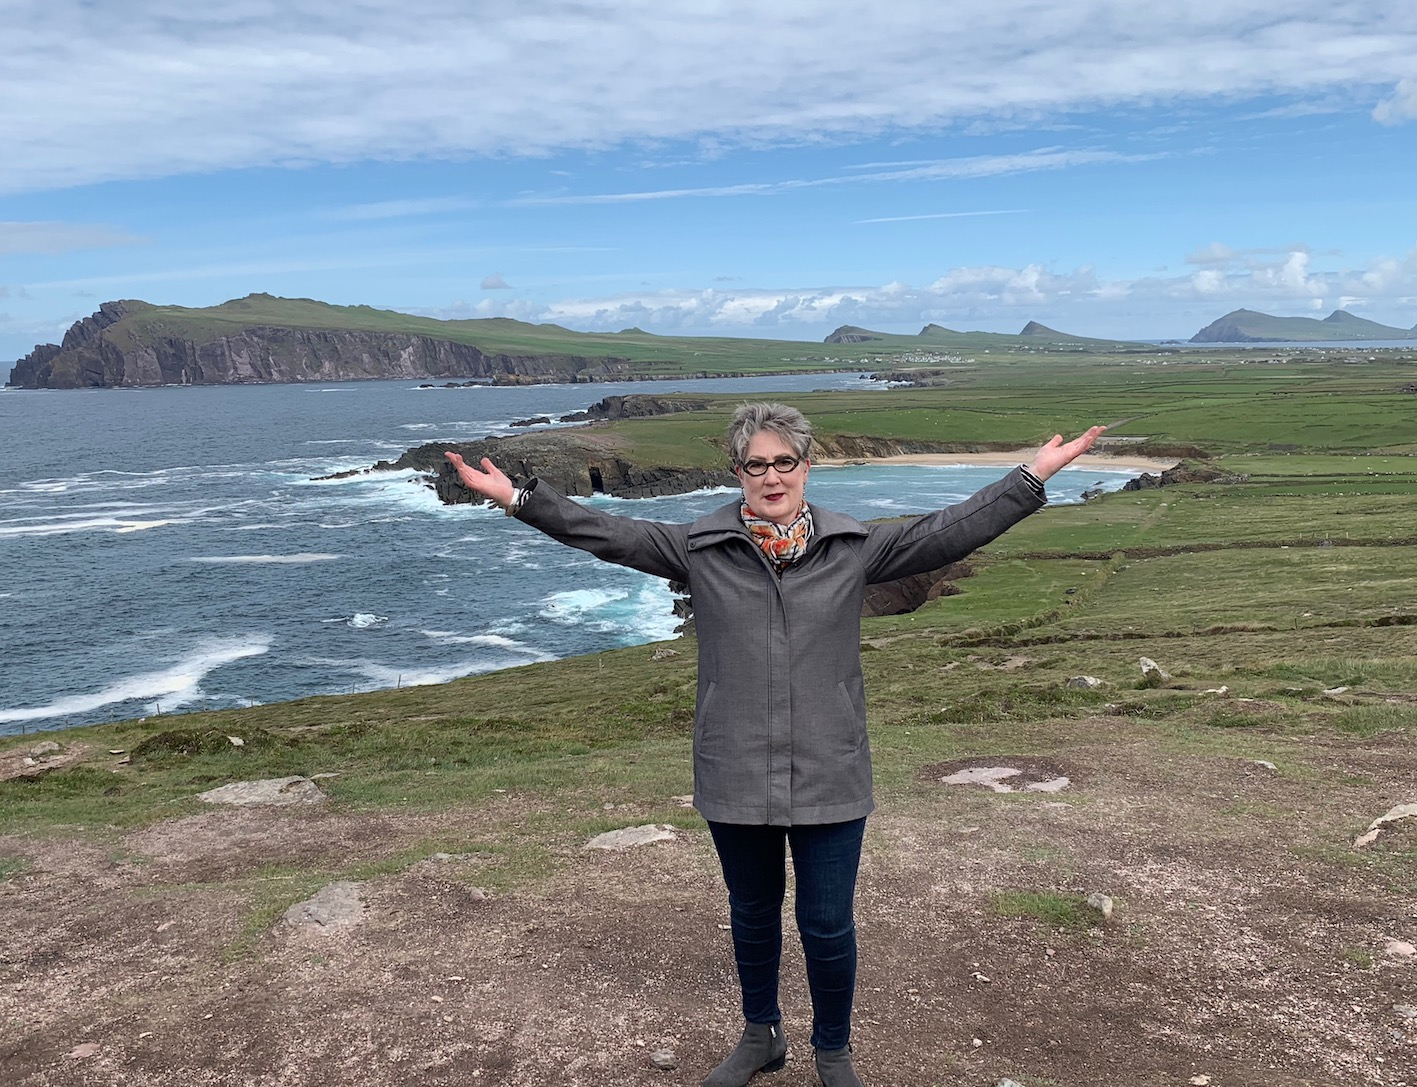 Marylou Colver celebrating her birthday on the Slea Head Drive in Dingle